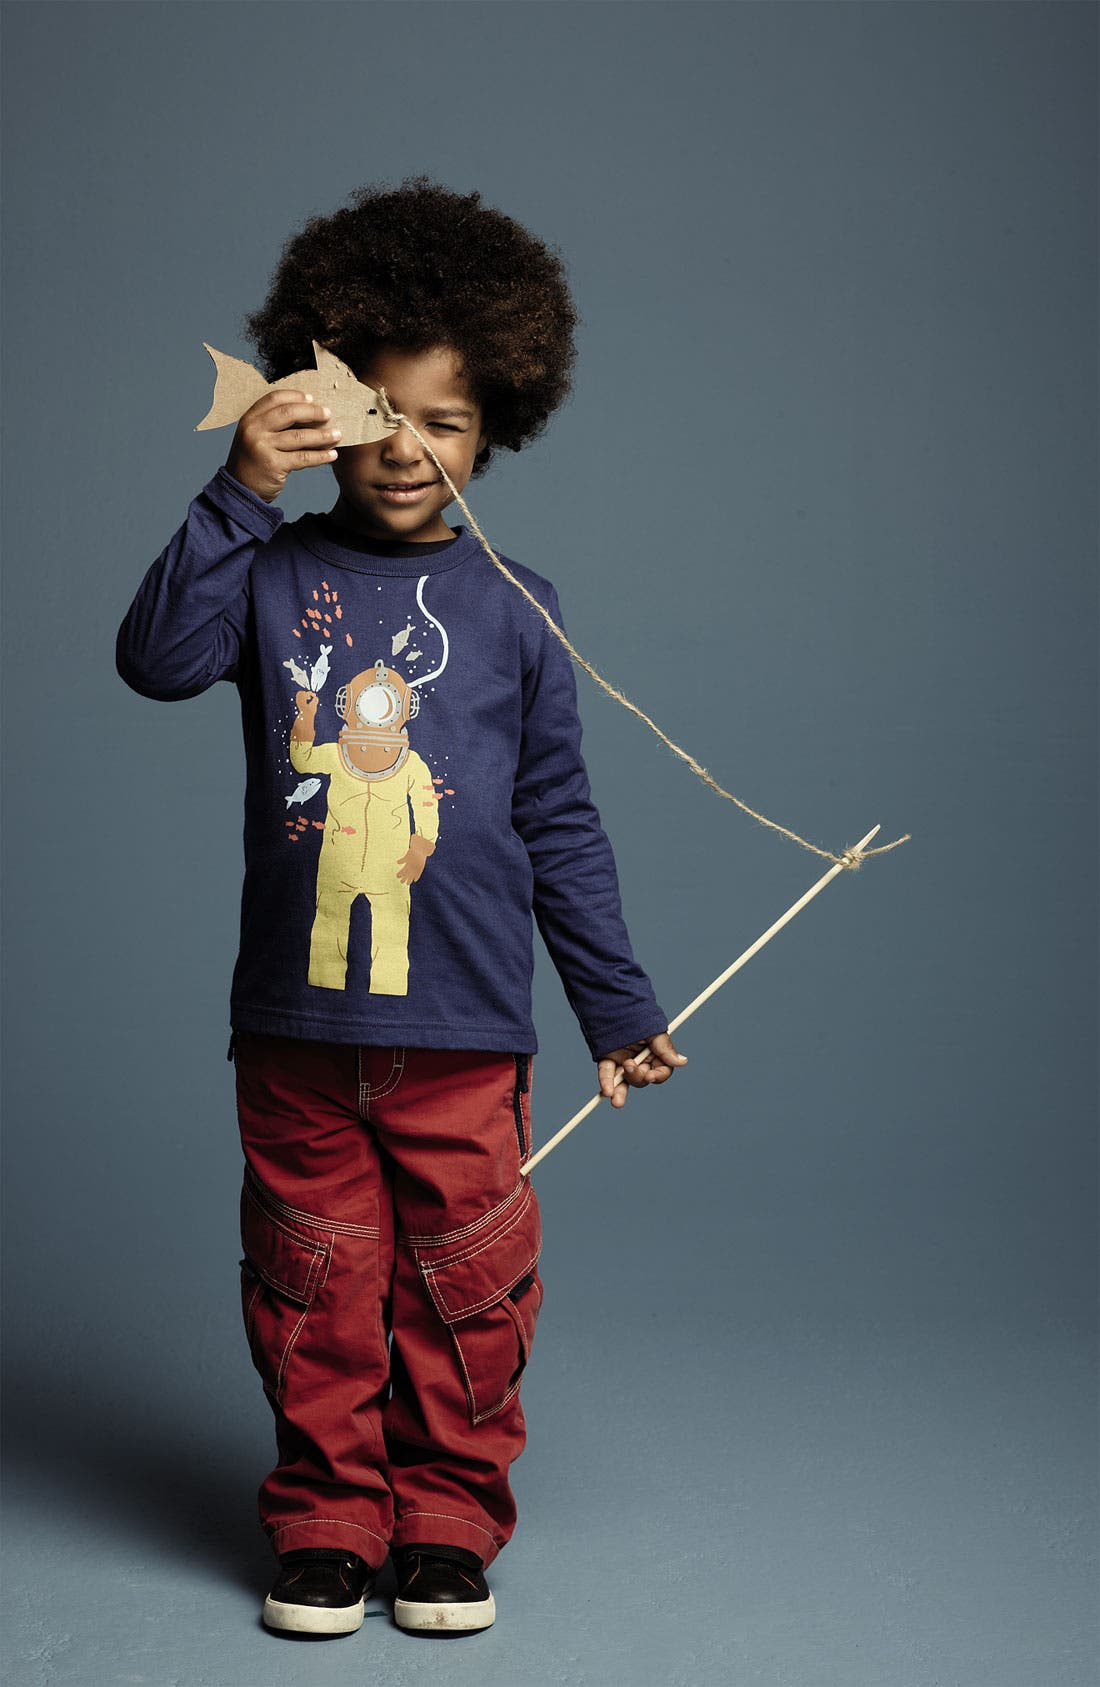 Alternate Image 2  - Mini Boden 'Exploration' T-Shirt (Toddler)